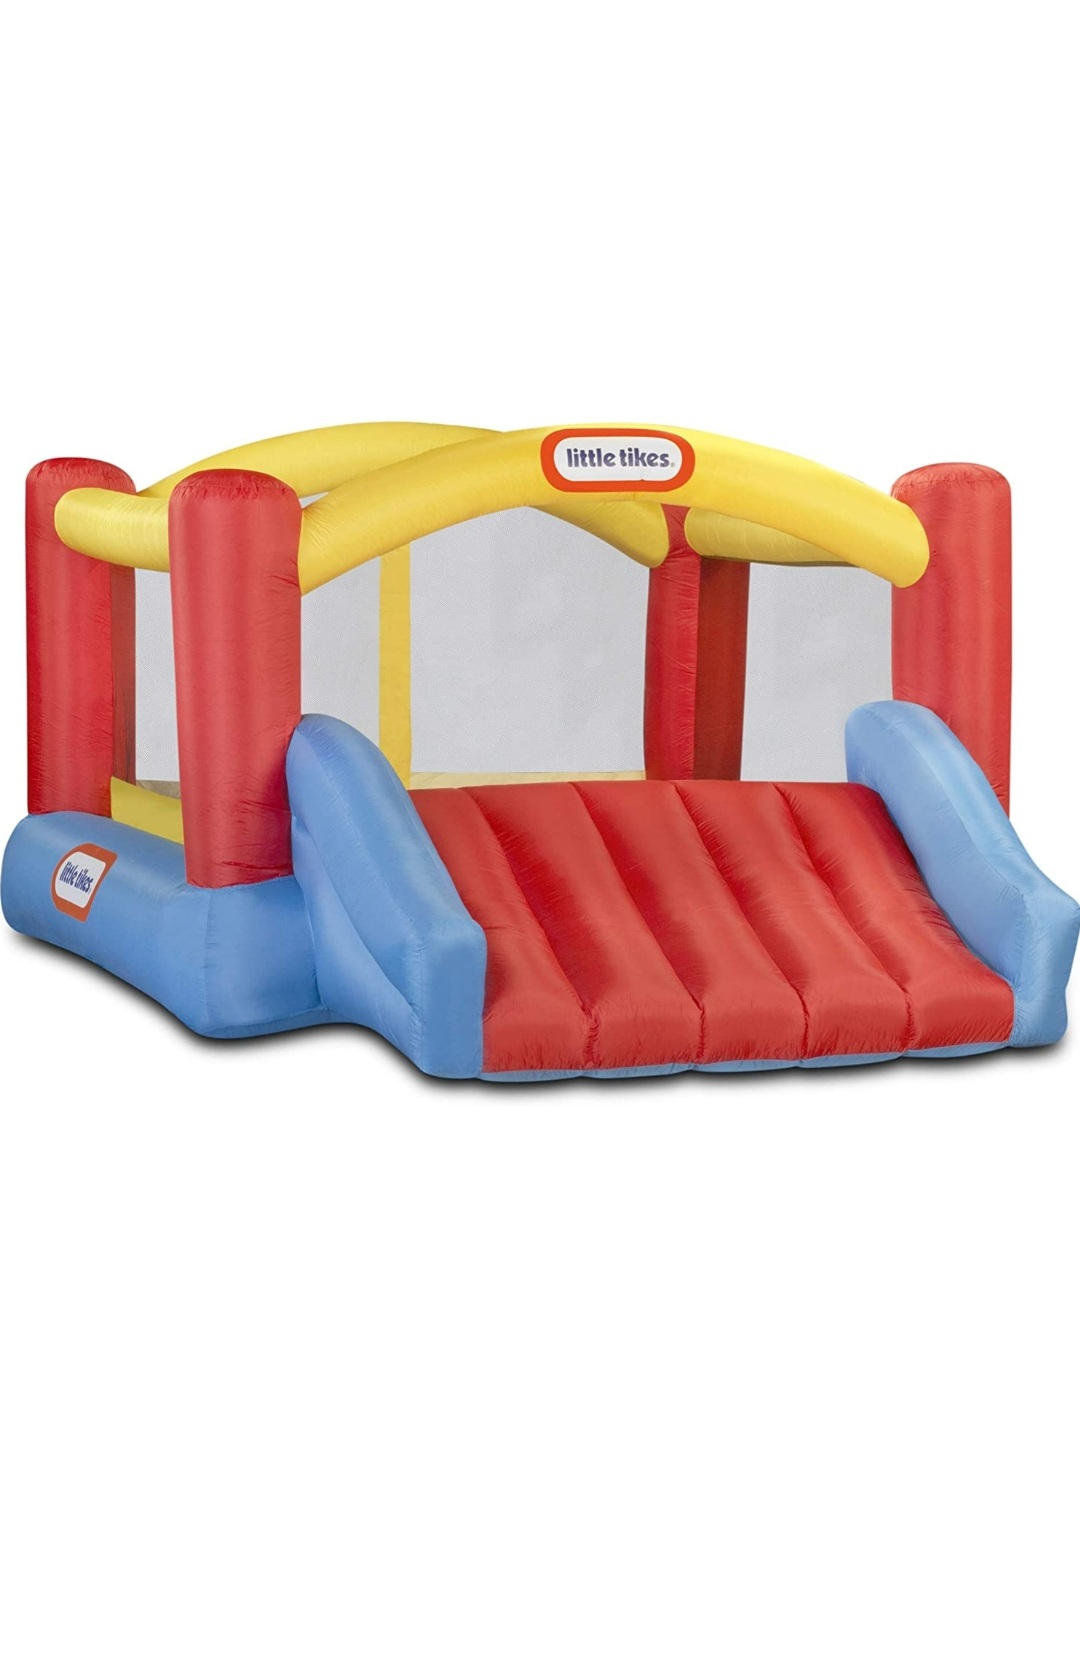 Childrens Bouncy House